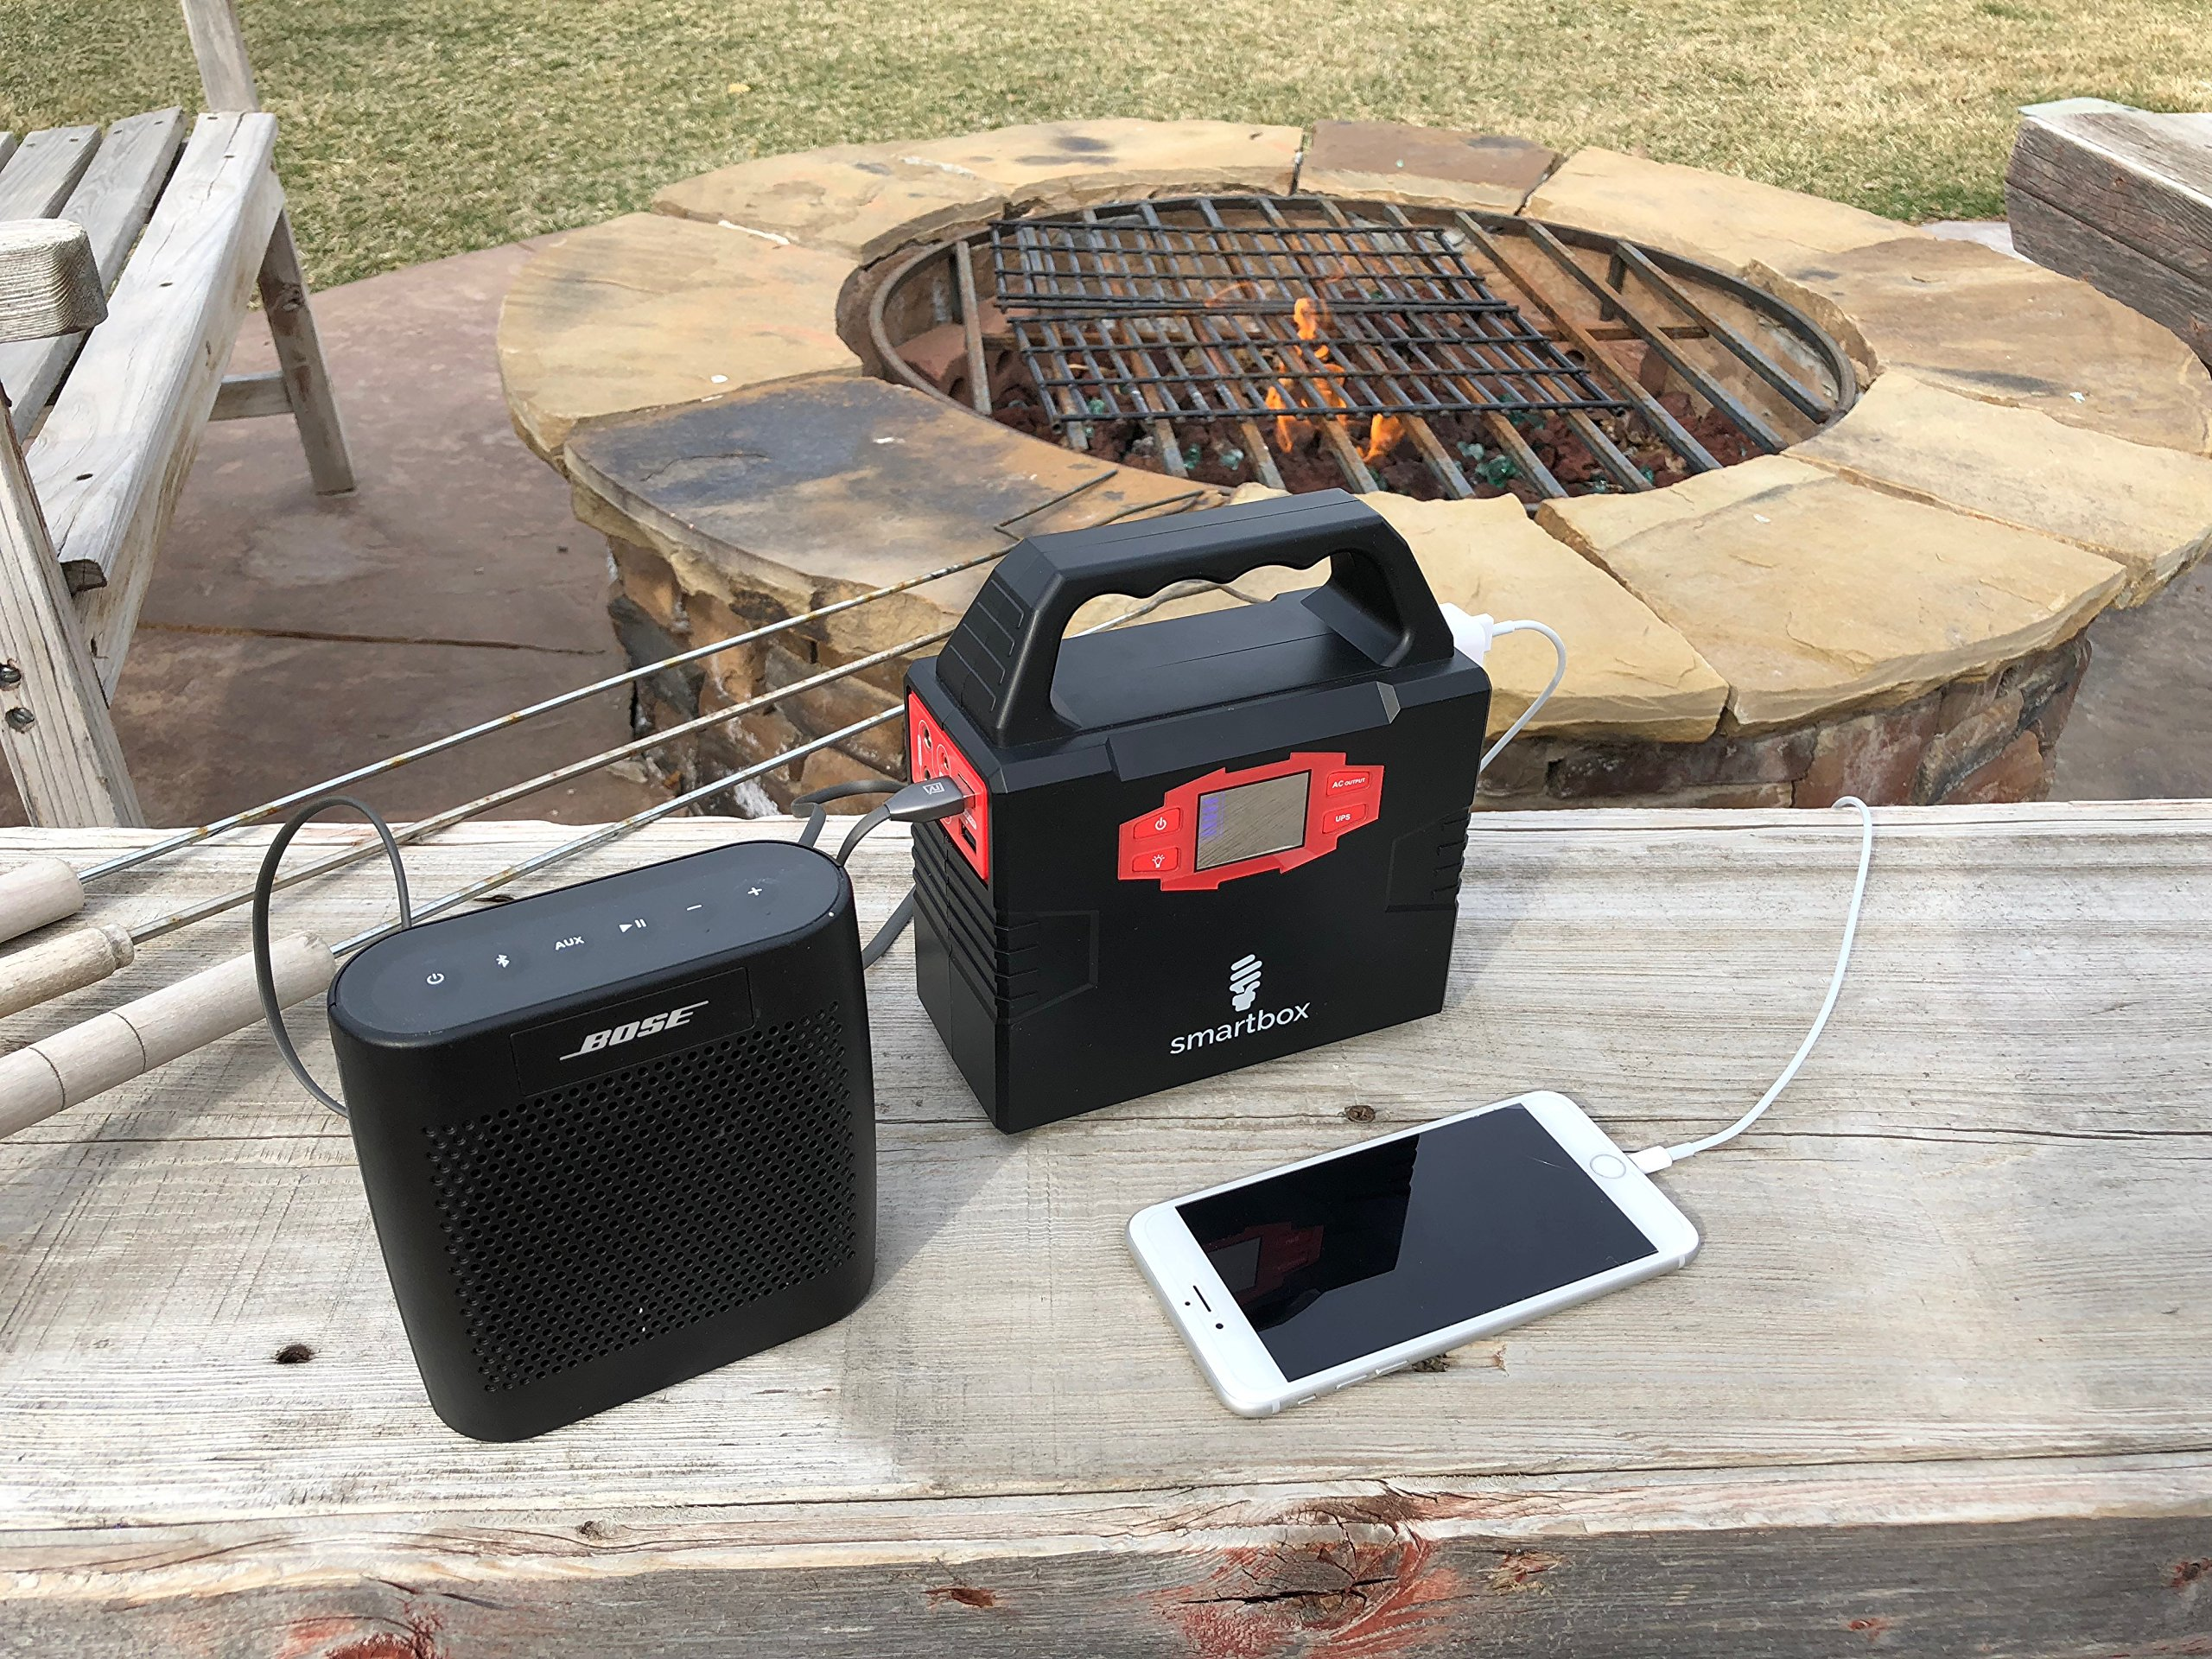 Smartbox Powerful Solar Generator -Portable Power Charging Station With Multiple USB & AC Outlets-100-Watt Emergency Solar Battery Charger With Ultra-Bright LED Light For Outdoor Activities by Smart Box (Image #4)